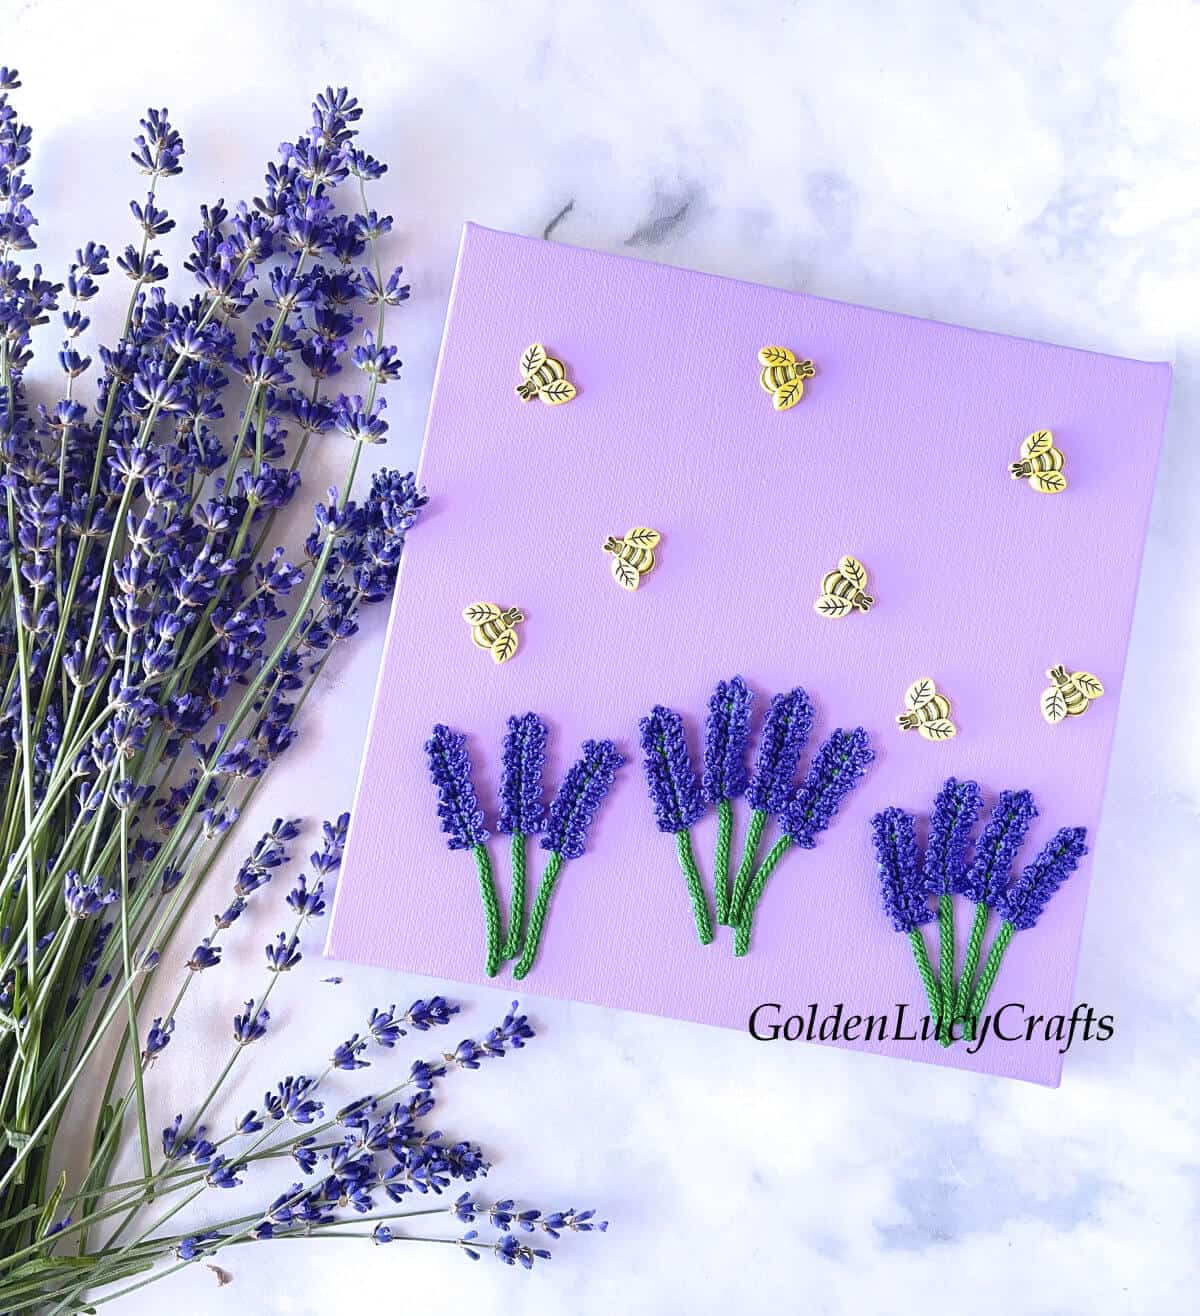 Crocheted lavender and bee buttons on the canvas.